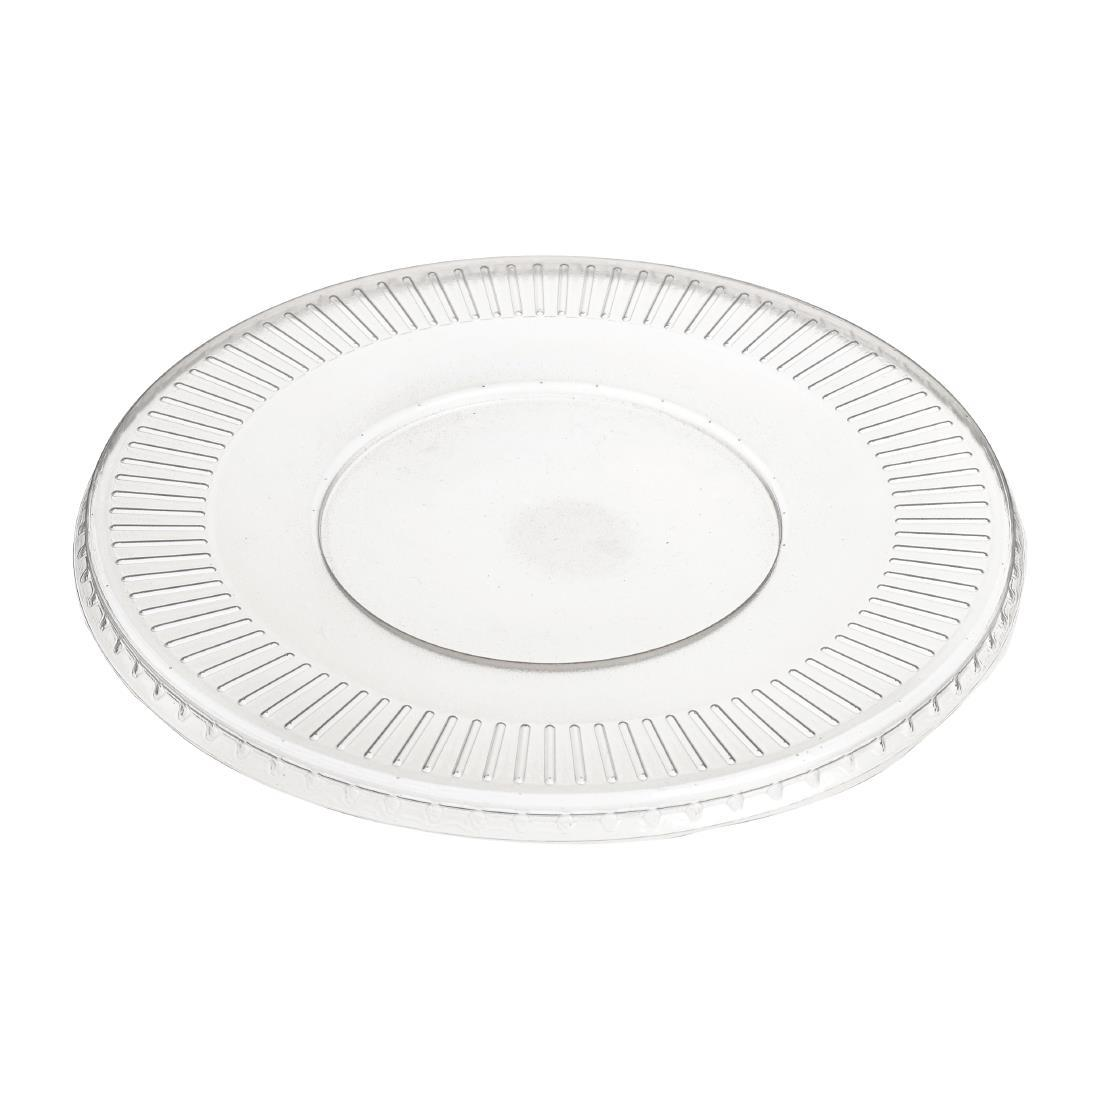 FD931 - Solia Recyclable Polypropylene Mix Bagasse Bowl Lids 1150ml  - Pack of 50 - FD931